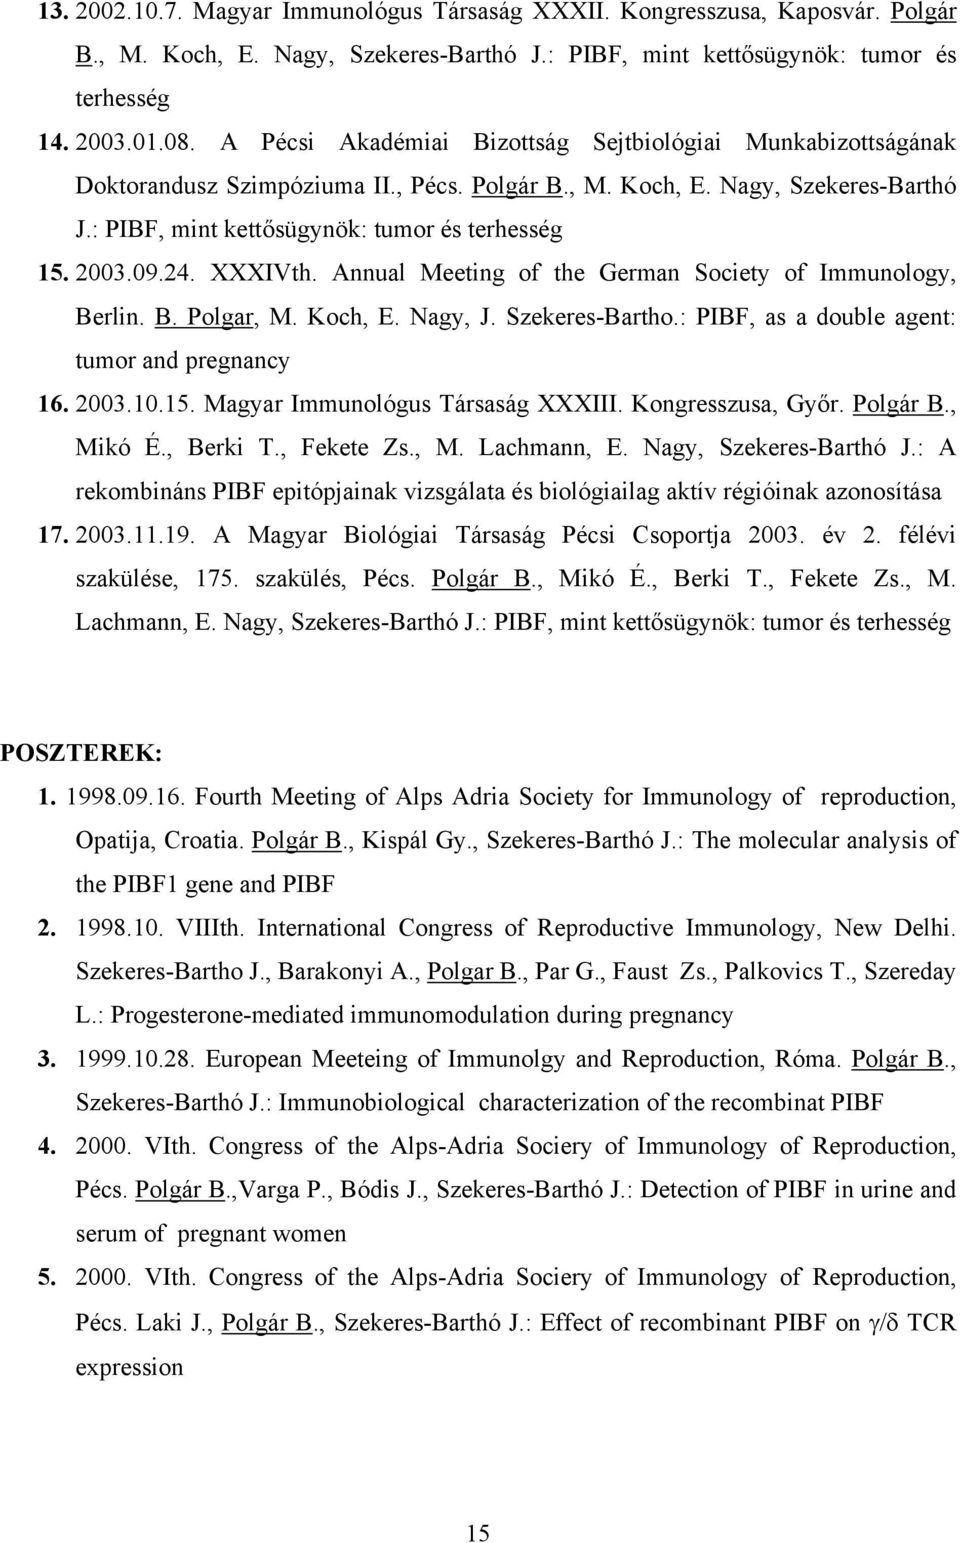 09.24. XXXIVth. Annual Meeting of the German Society of Immunology, Berlin. B. Polgar, M. Koch, E. Nagy, J. Szekeres-Bartho.: PIBF, as a double agent: tumor and pregnancy 16. 2003.10.15.